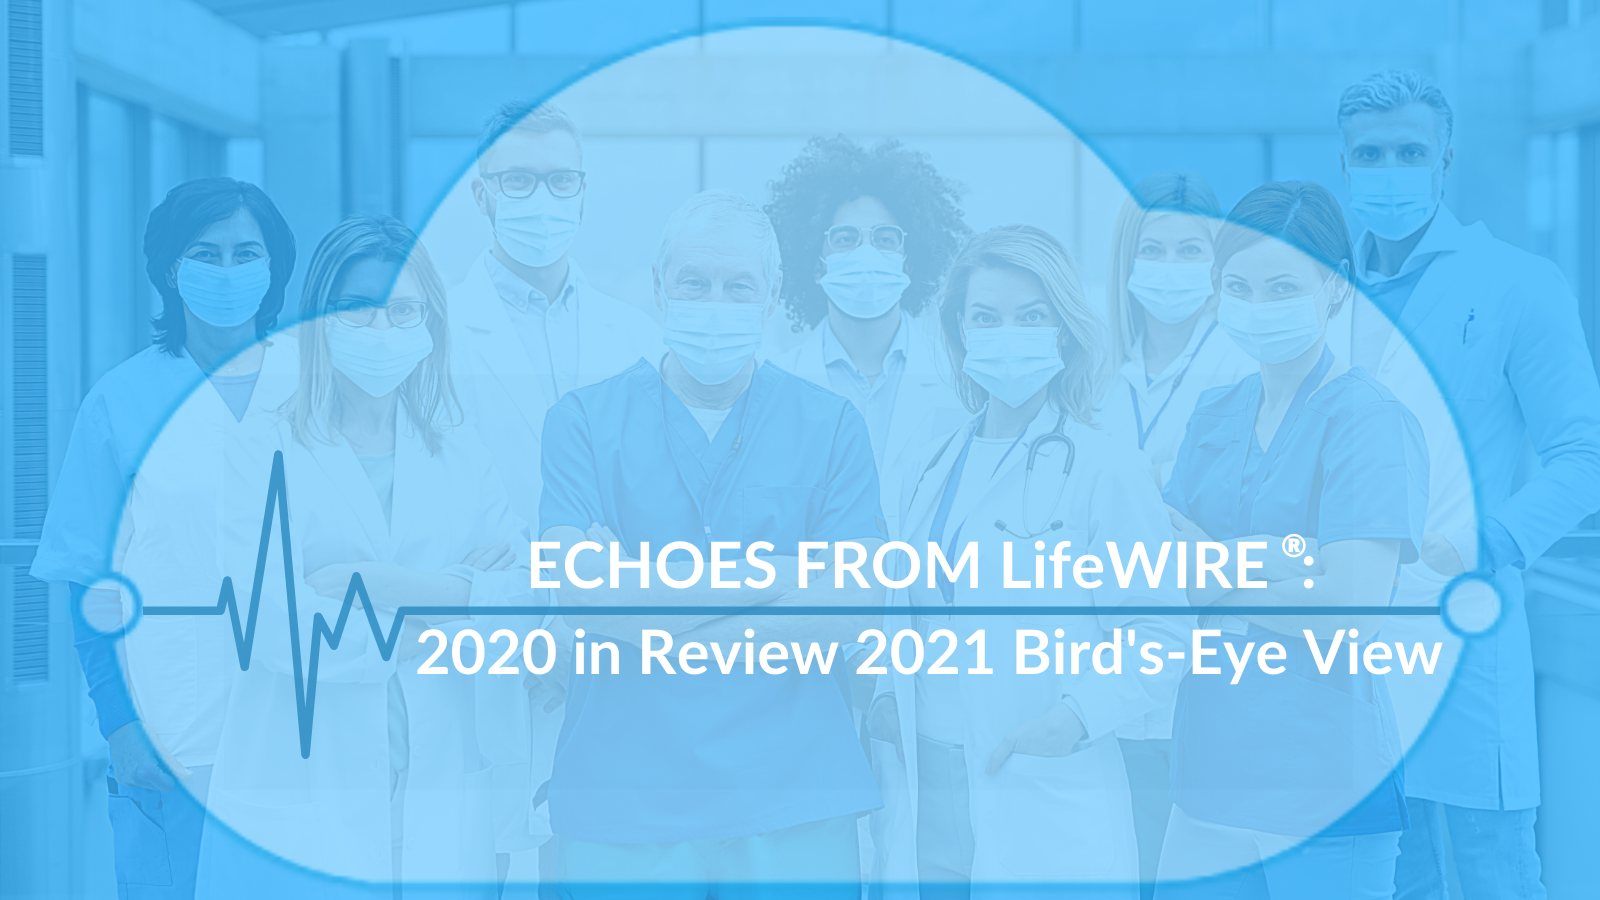 Echoes From LifeWIRE: 2020 in Review and 2021 Bird's-Eye View